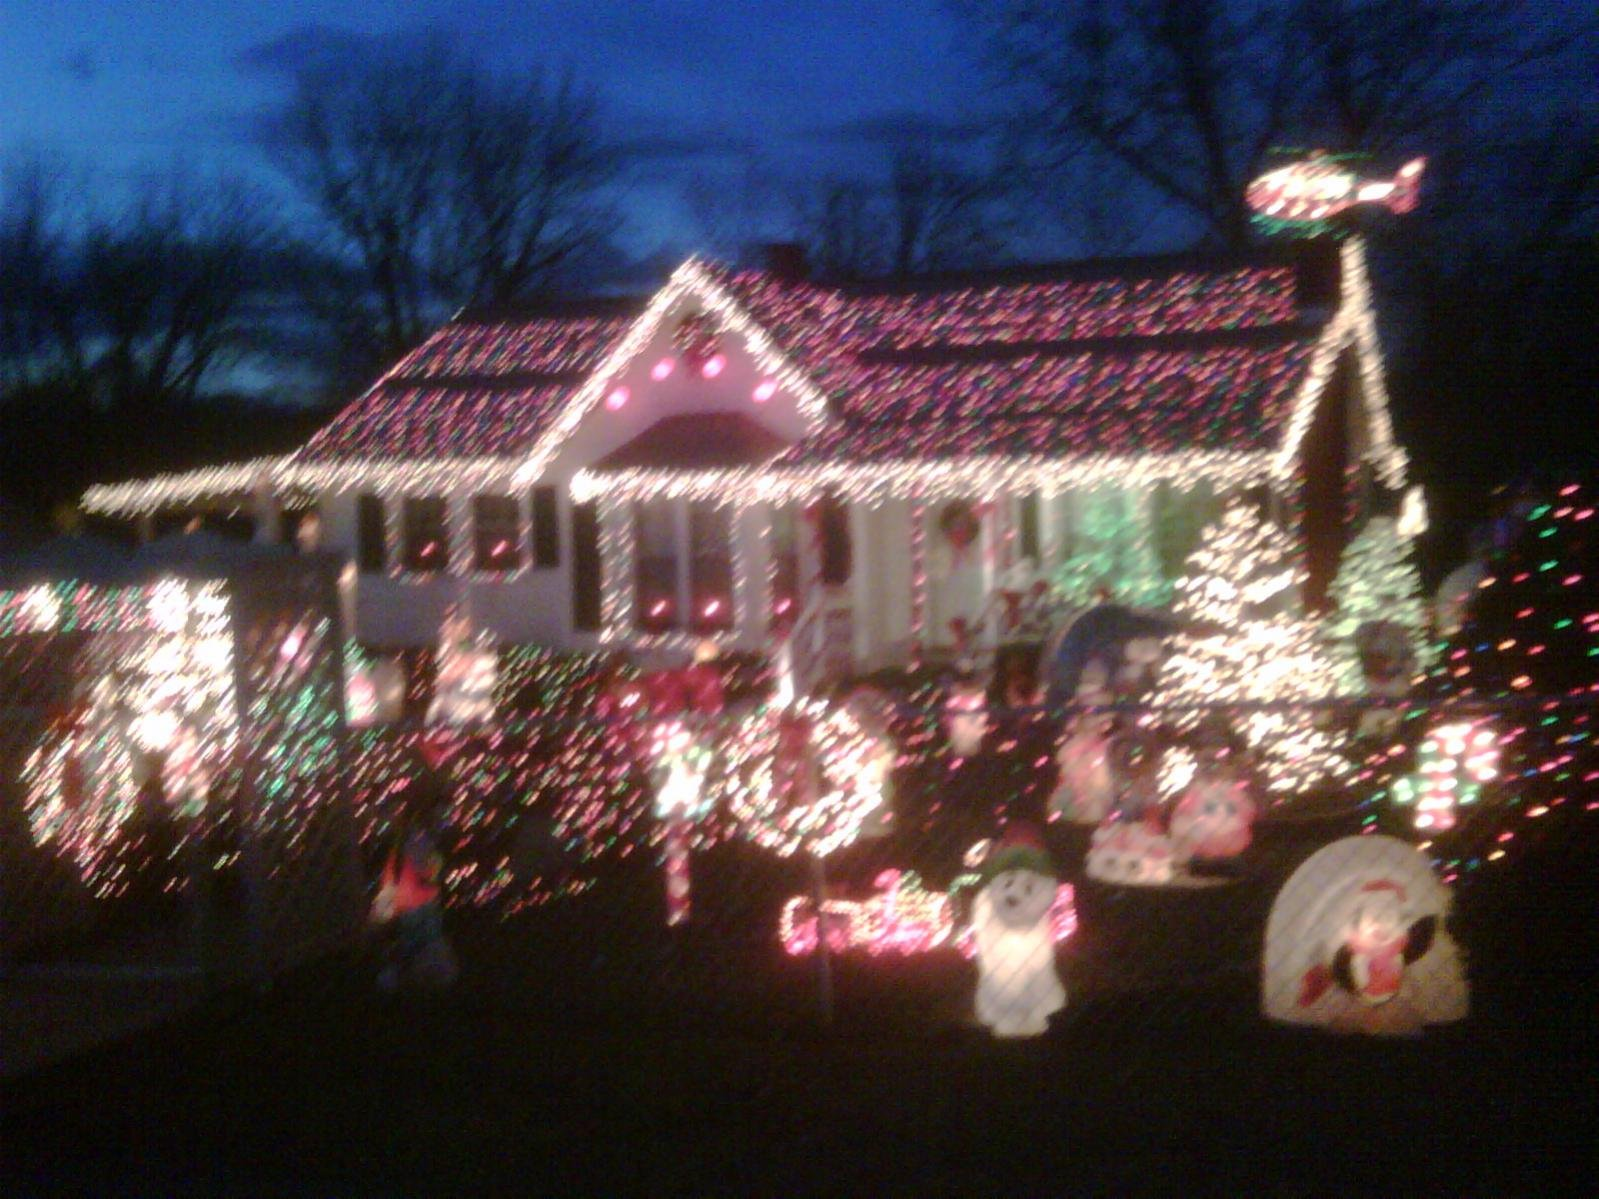 Mcadenville Christmas Lights.Christmas Lights Mcadenville Nc No 56k Chevrolet